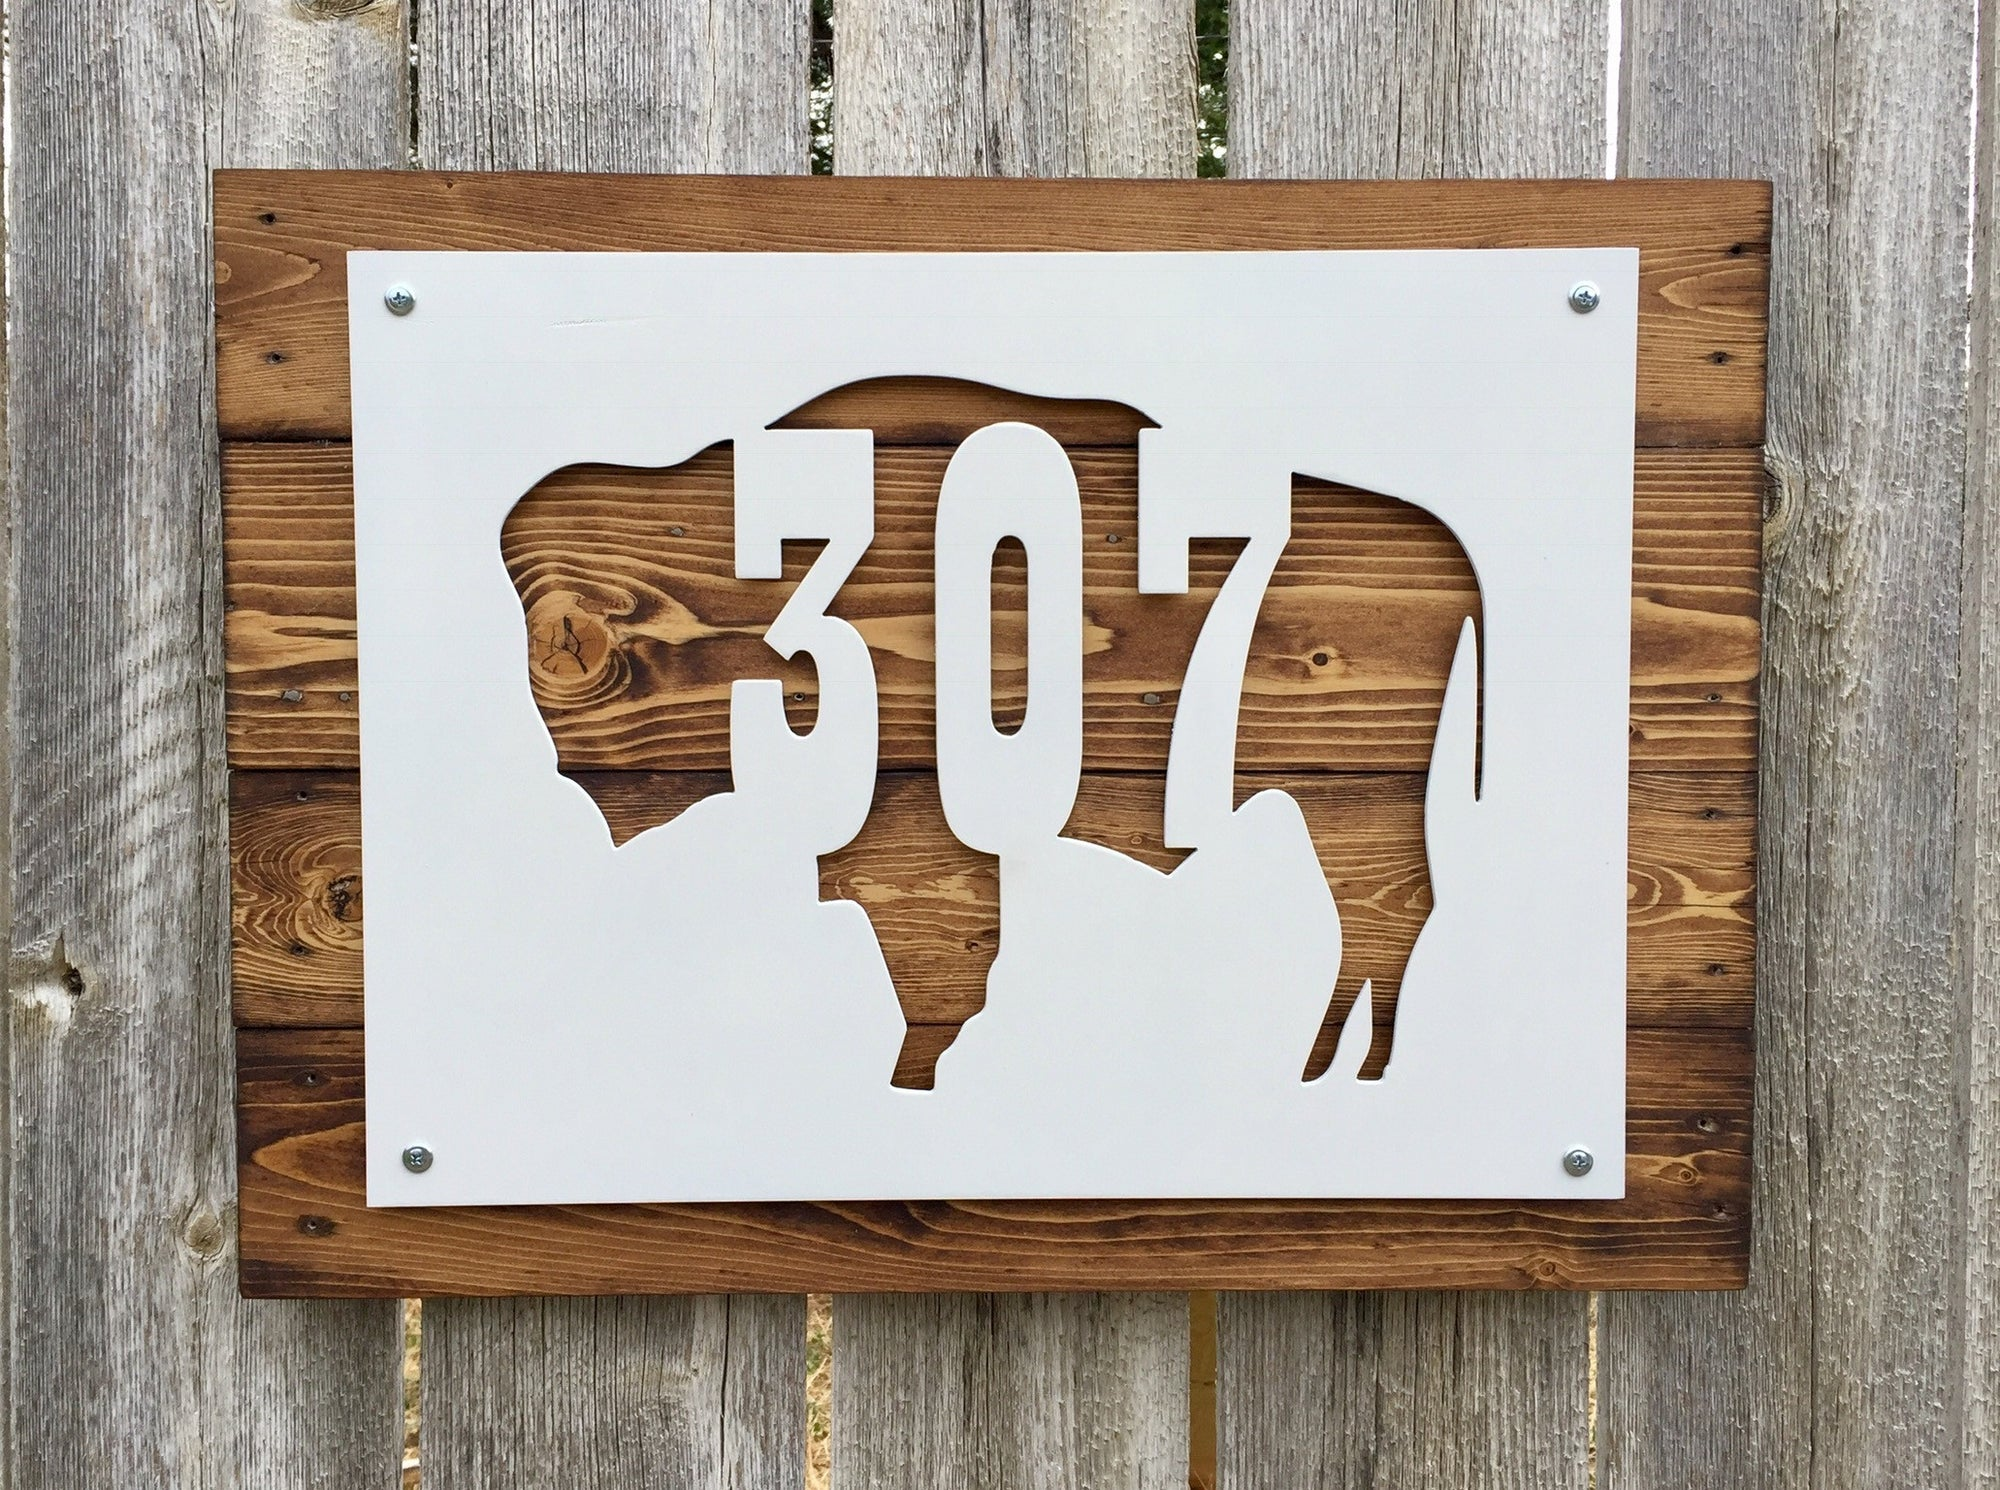 Wyoming Buffalo 307 Metal Sign